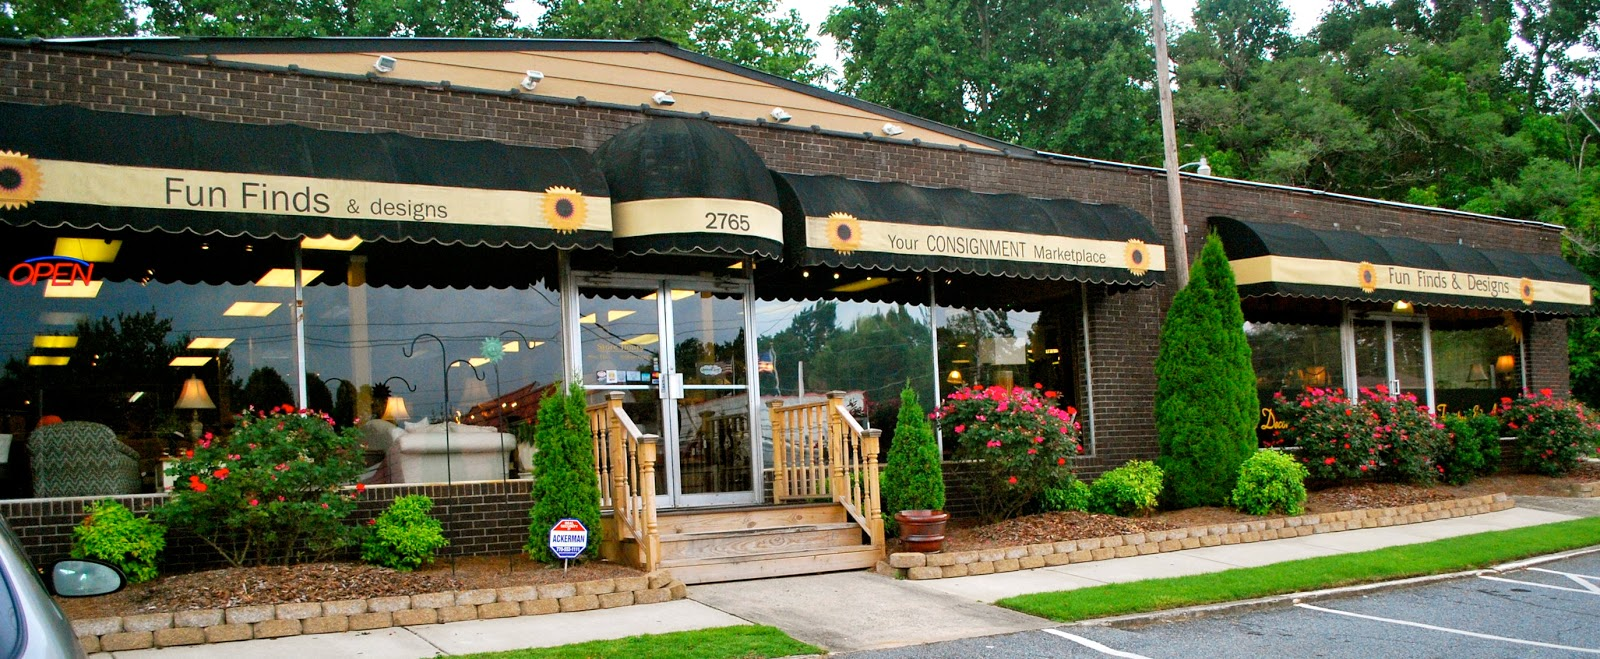 Atlanta Consignment Stores Luxury Home Furnishings For Less At Fun Finds And Designs